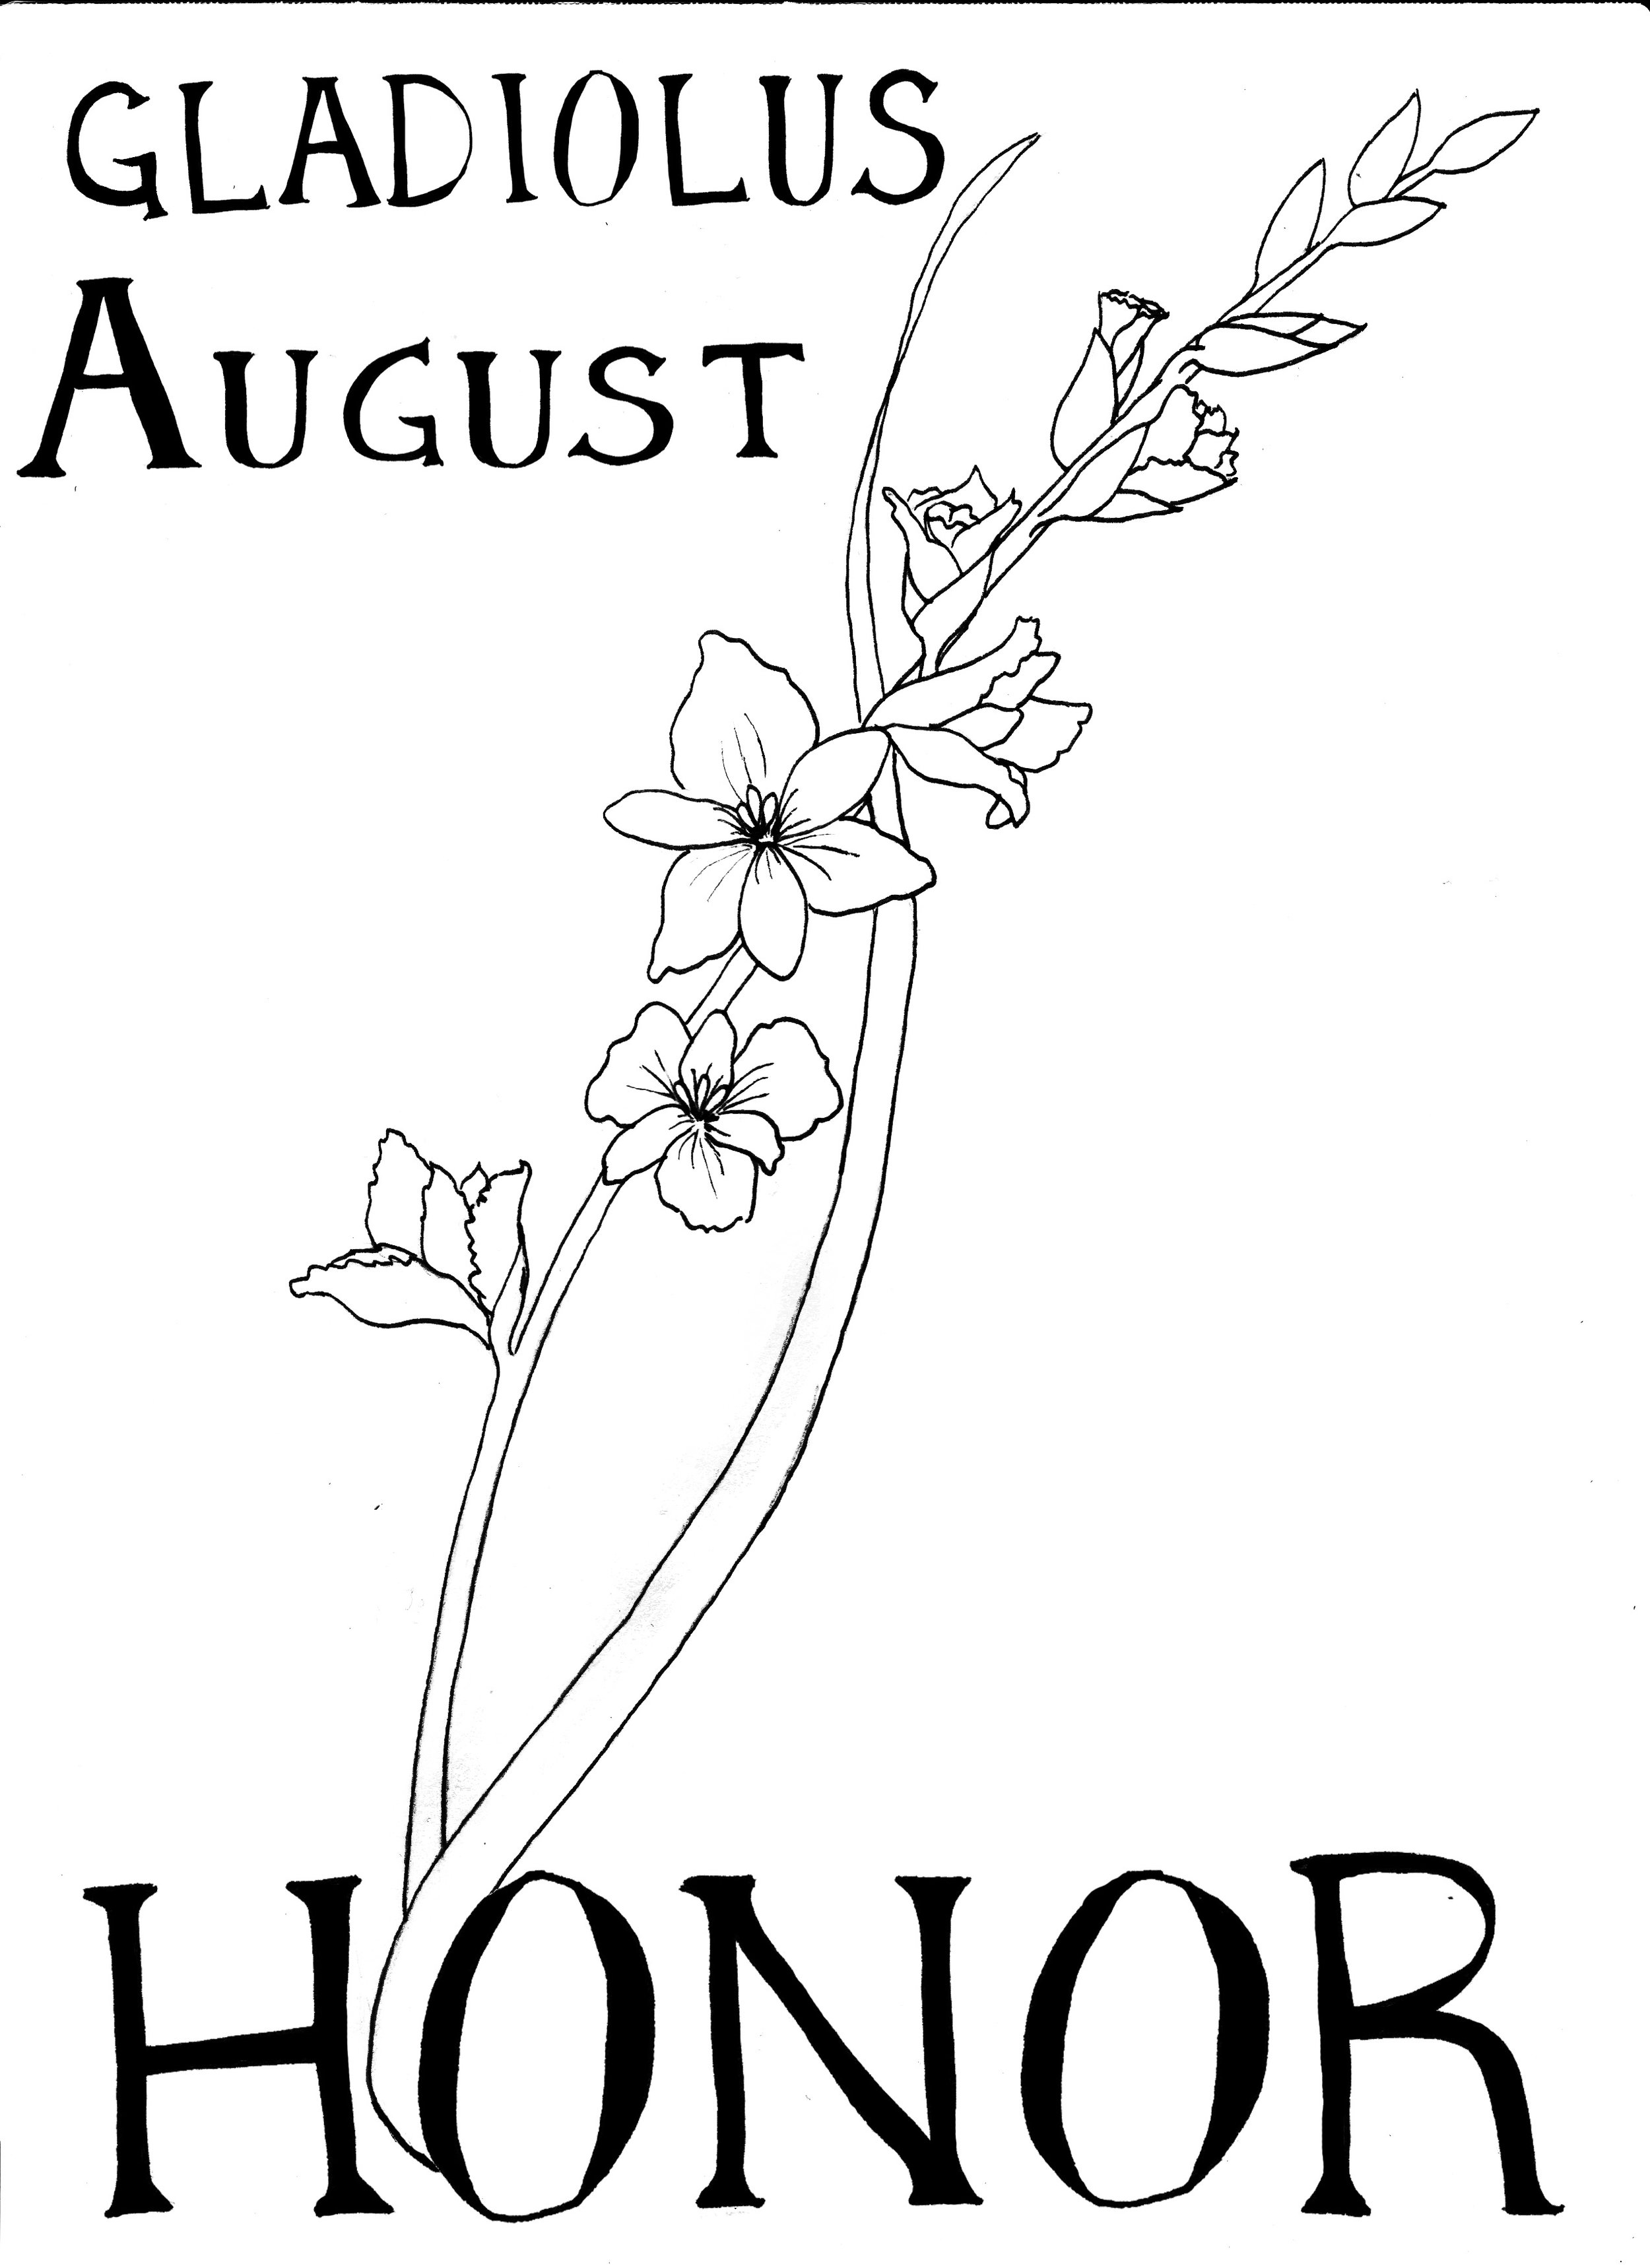 Final August Gladiolus with words.jpg